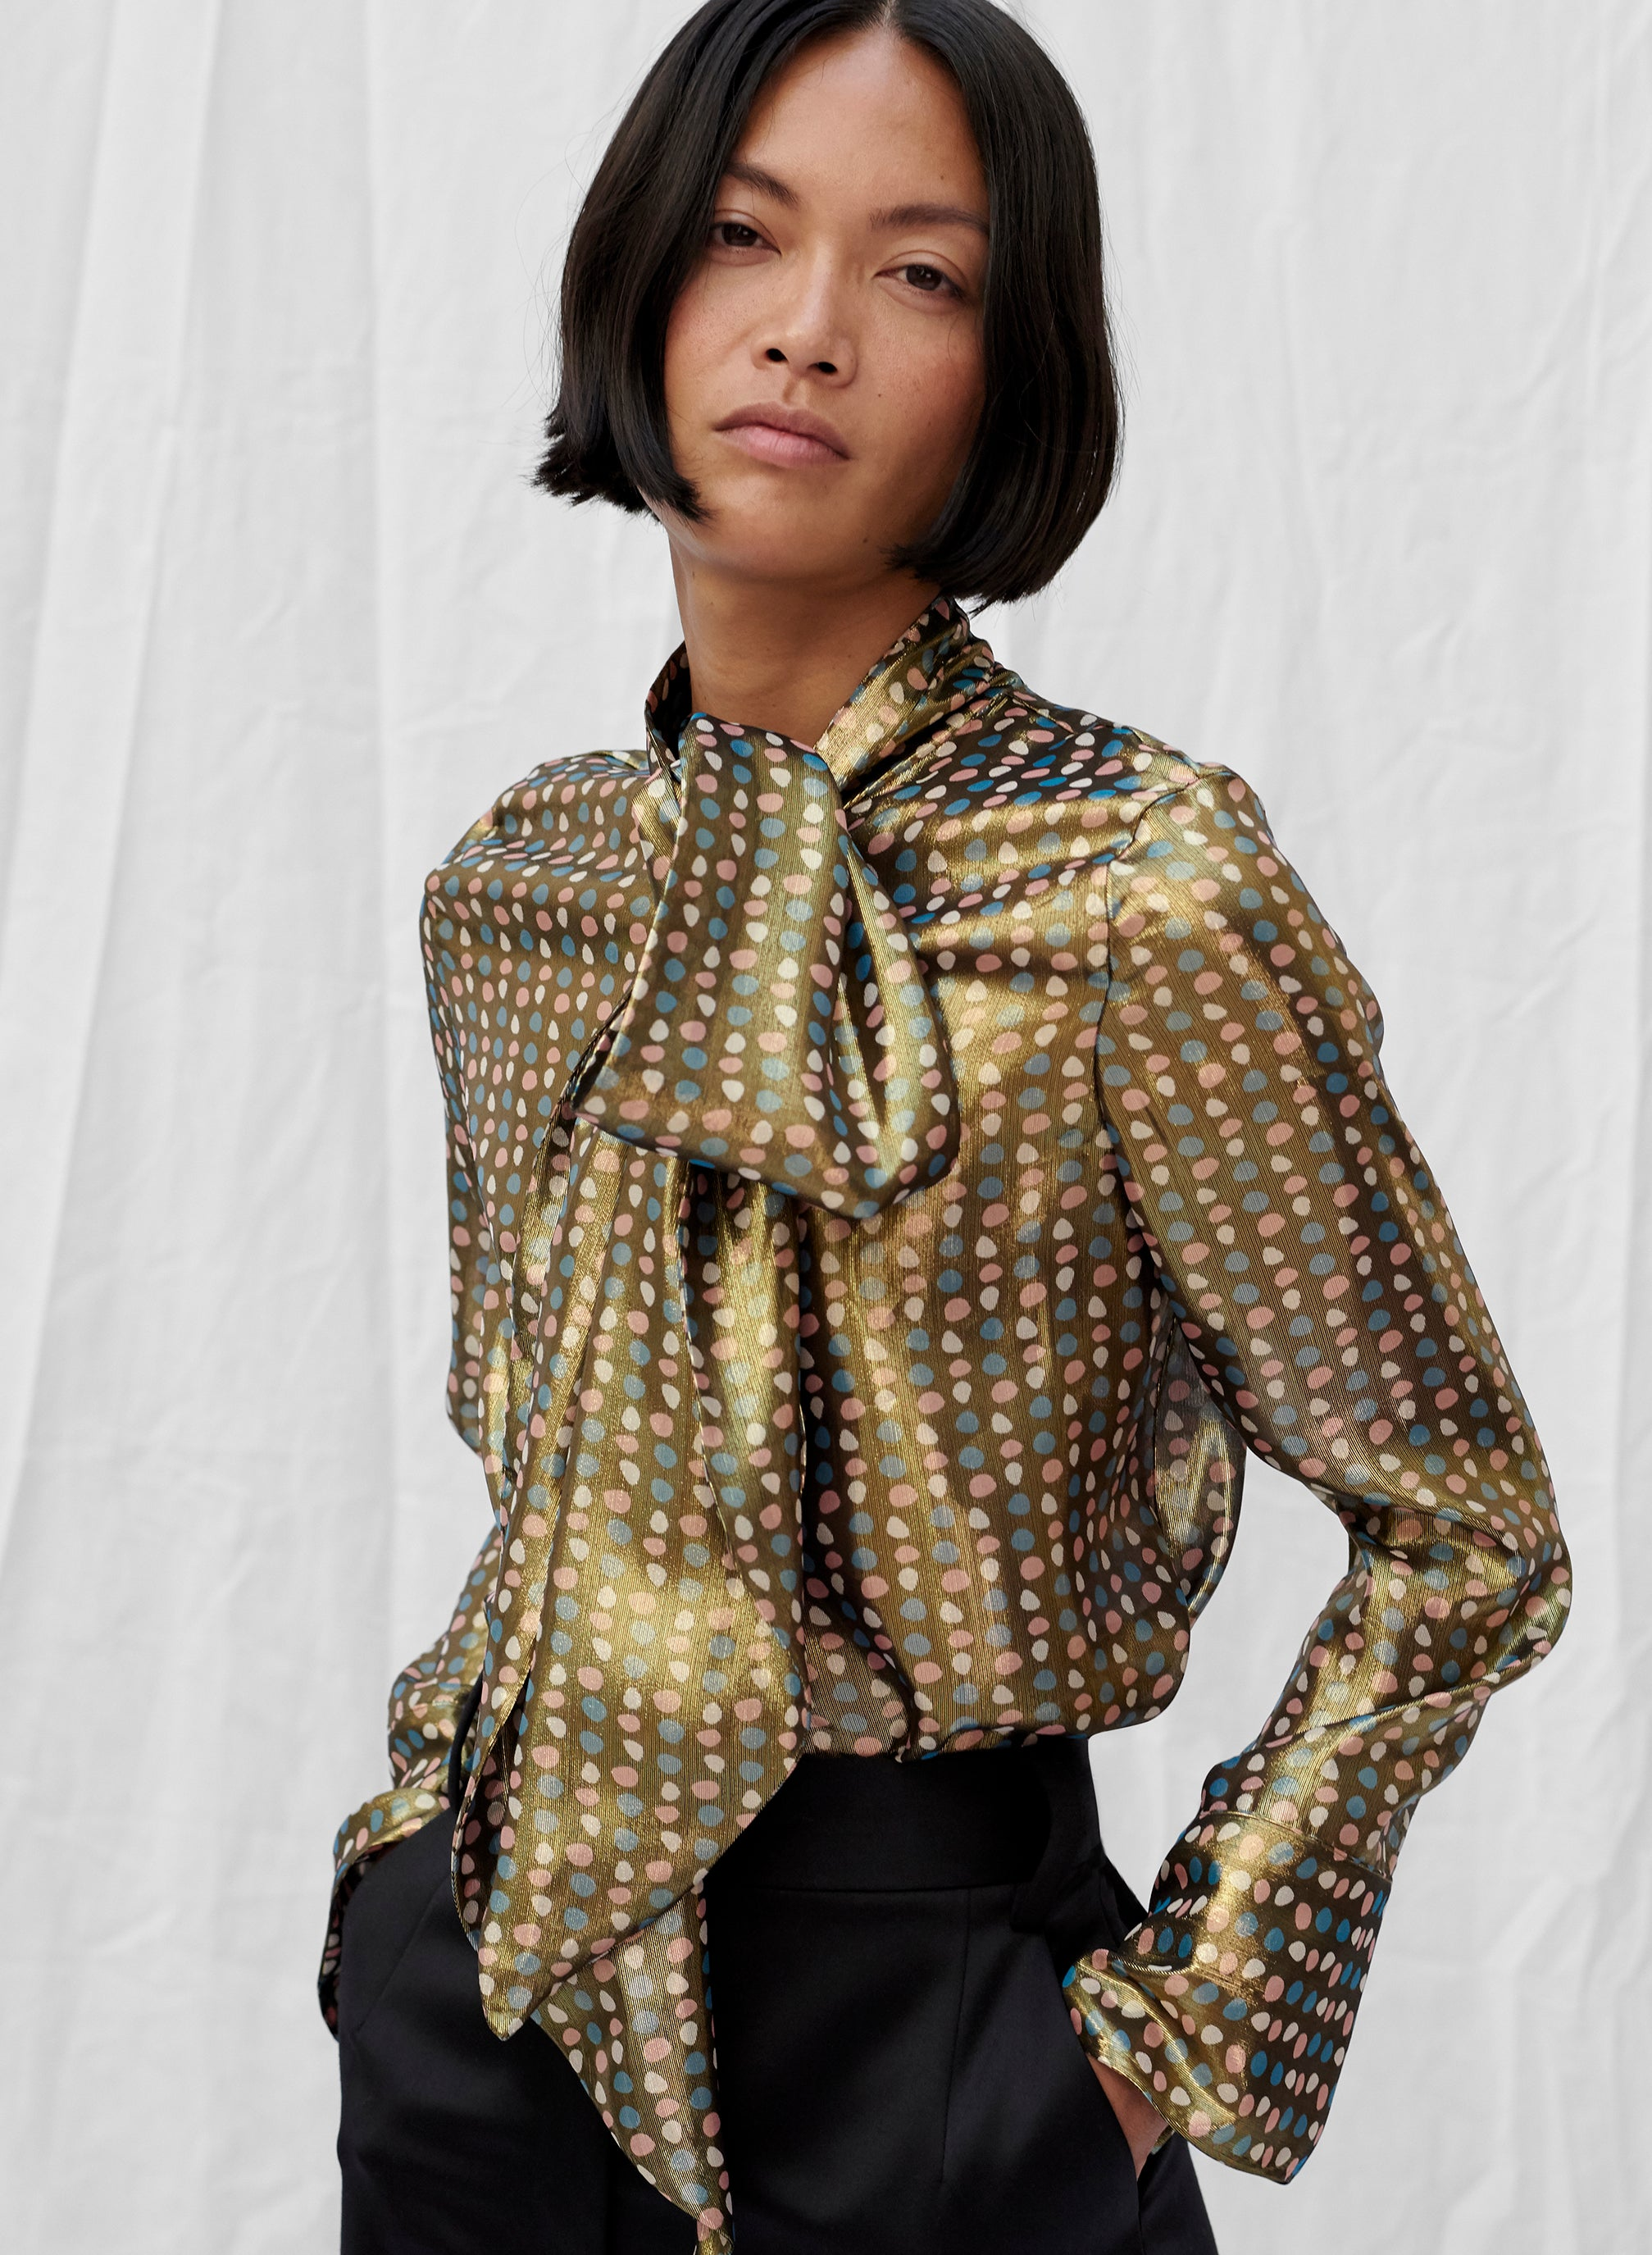 Metallic Mirrorball Bow Blouse